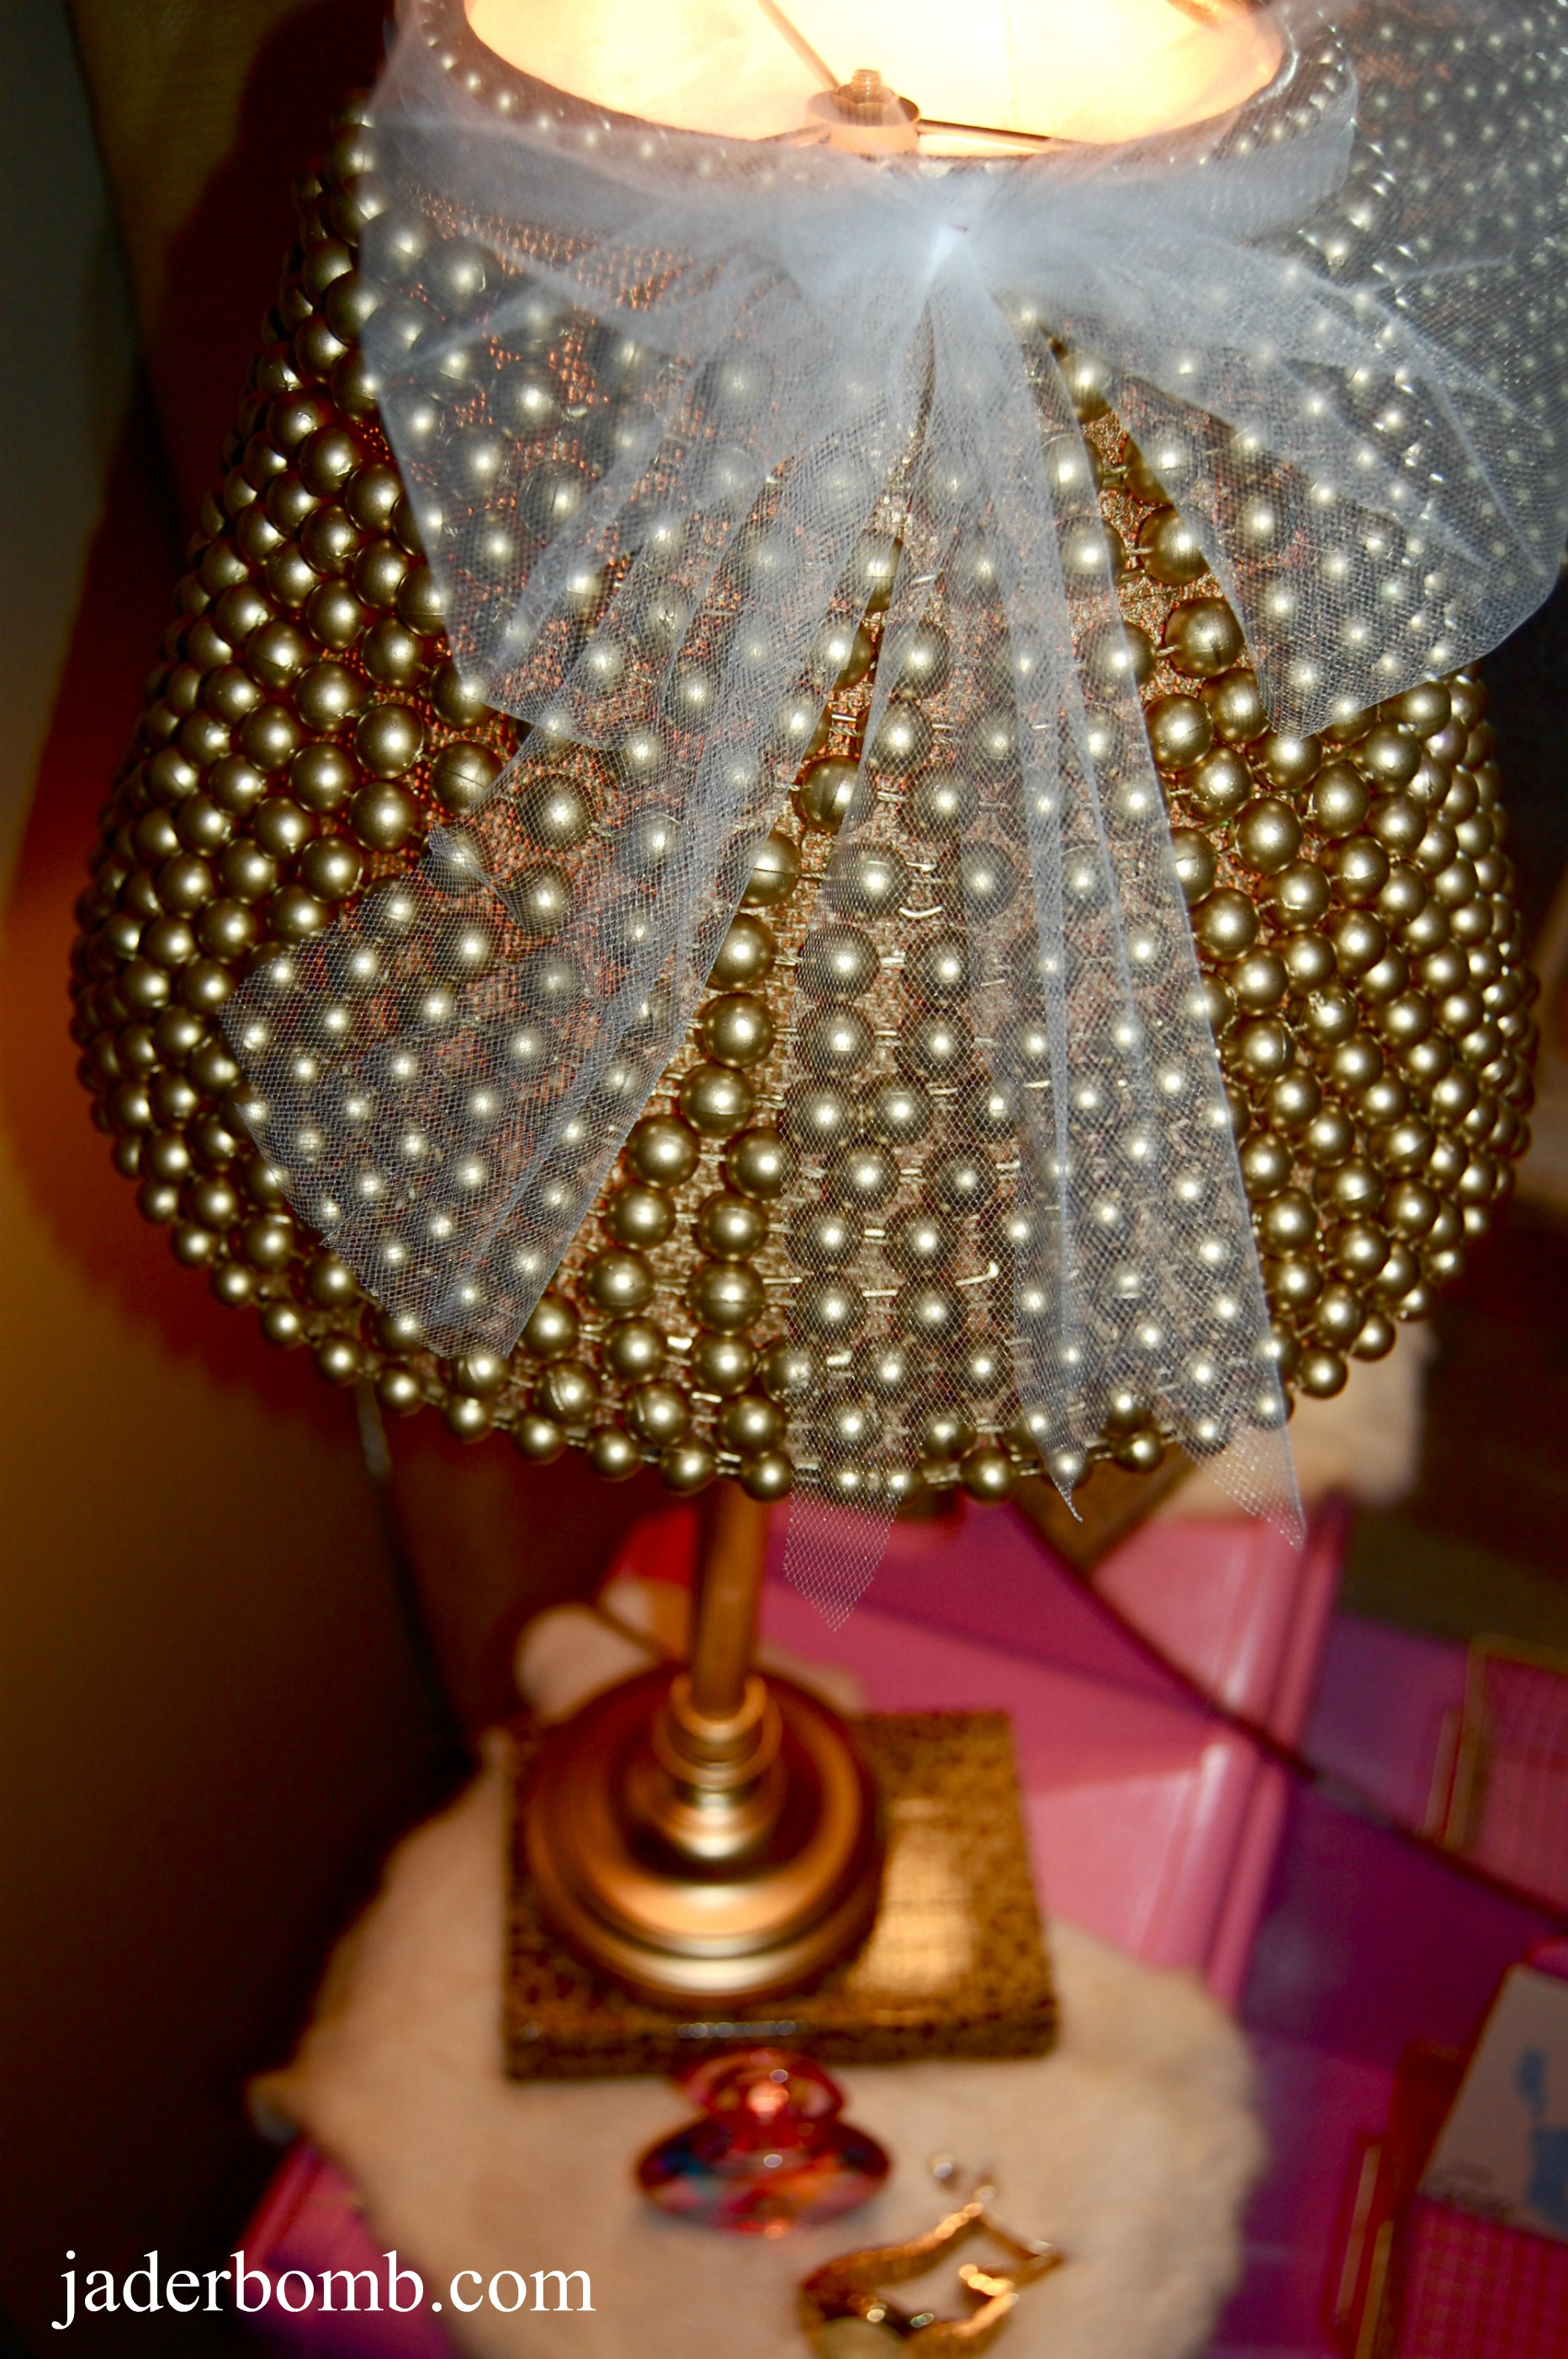 Shabby Chic Lampshade Archives Jaderbomb